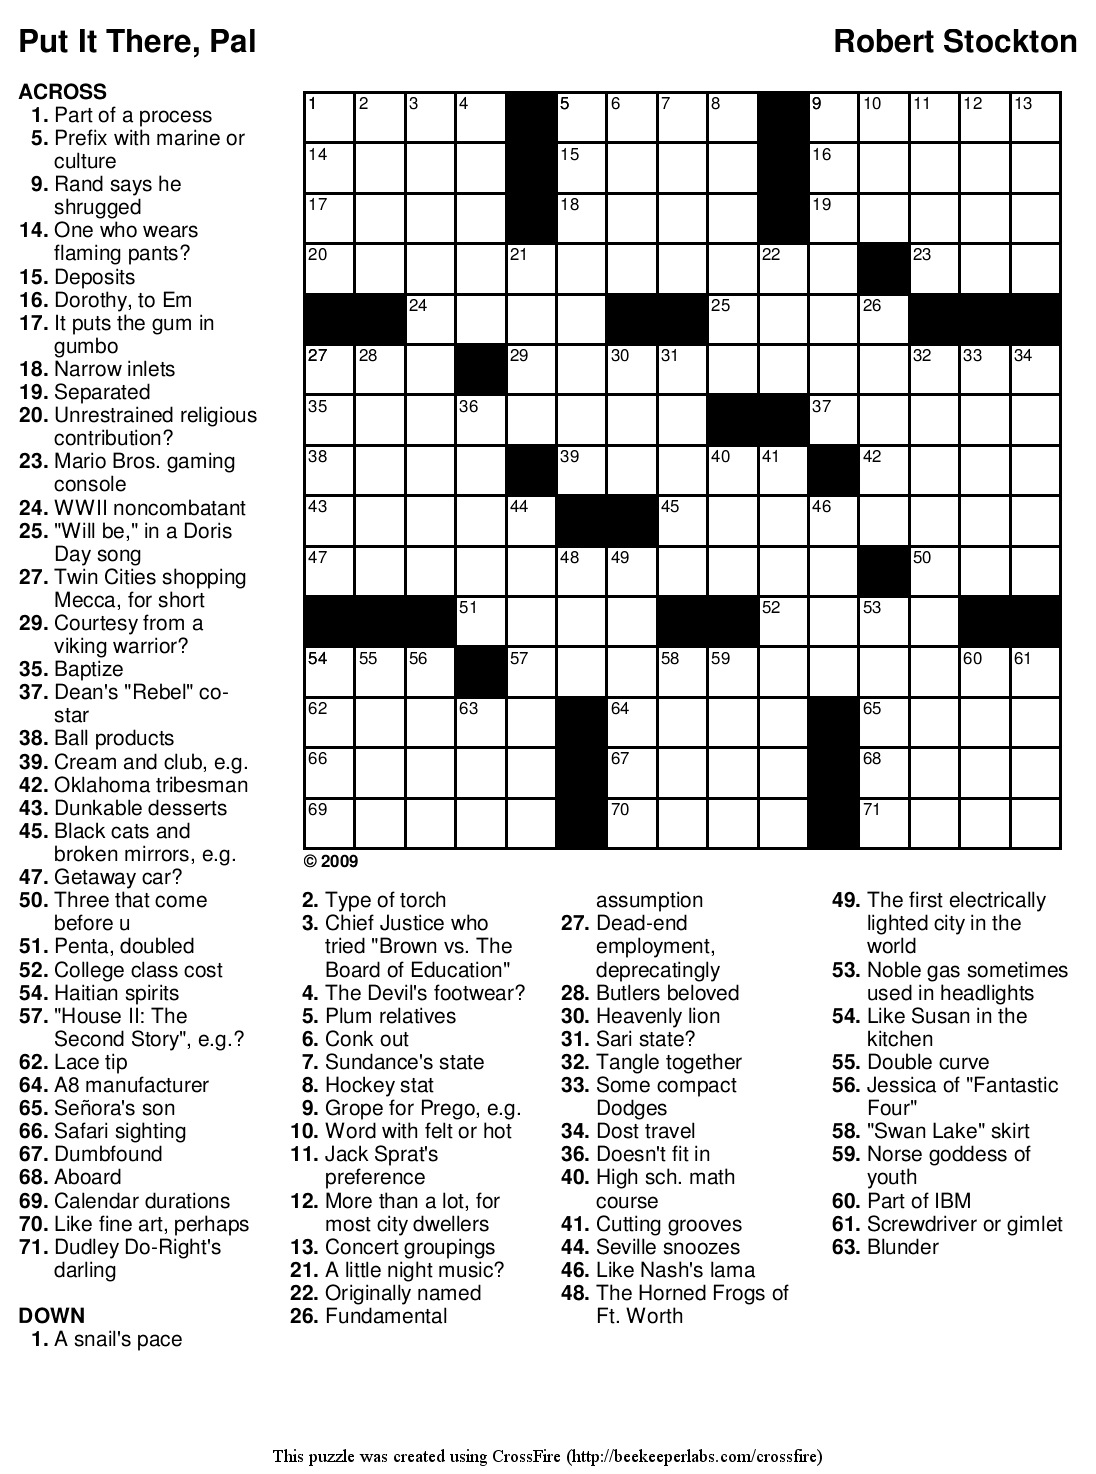 Witty banter crossword